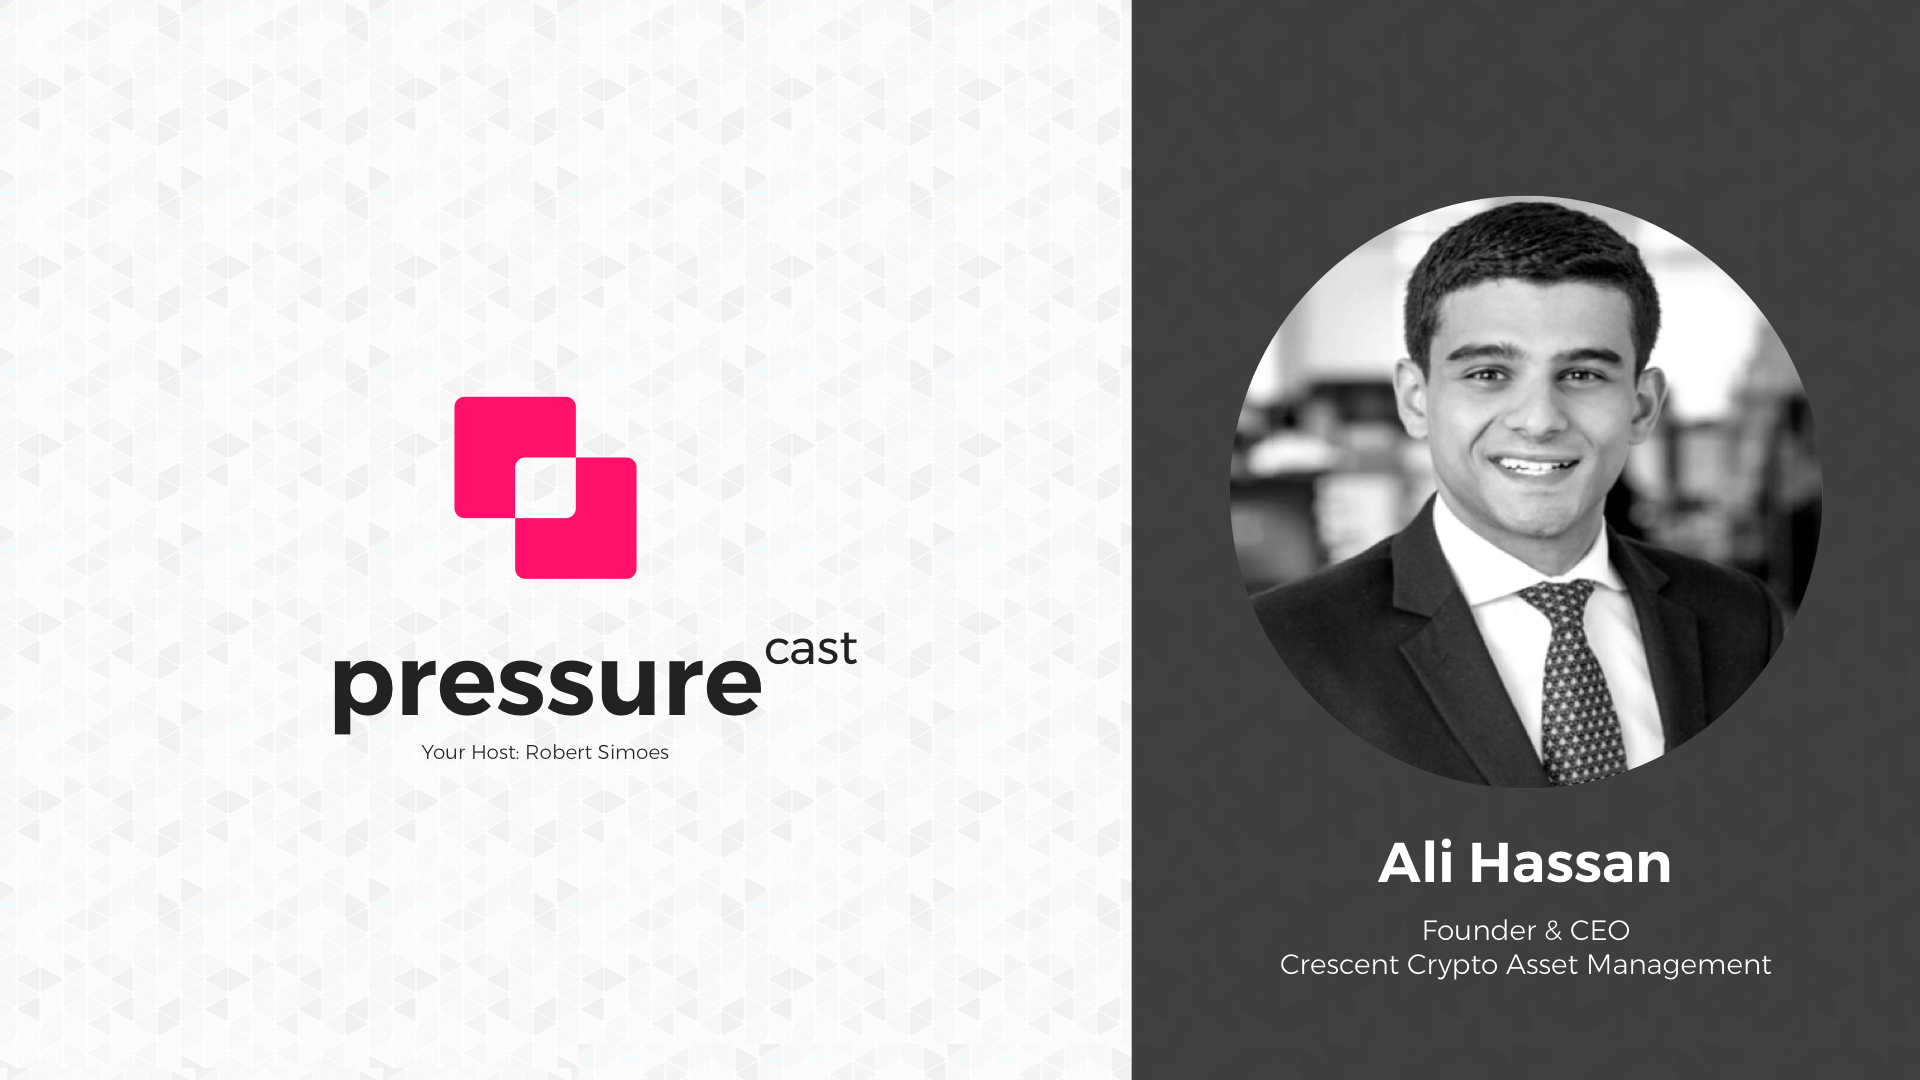 e9: ali hassan on institutionalizing digital assets with crescent crypto